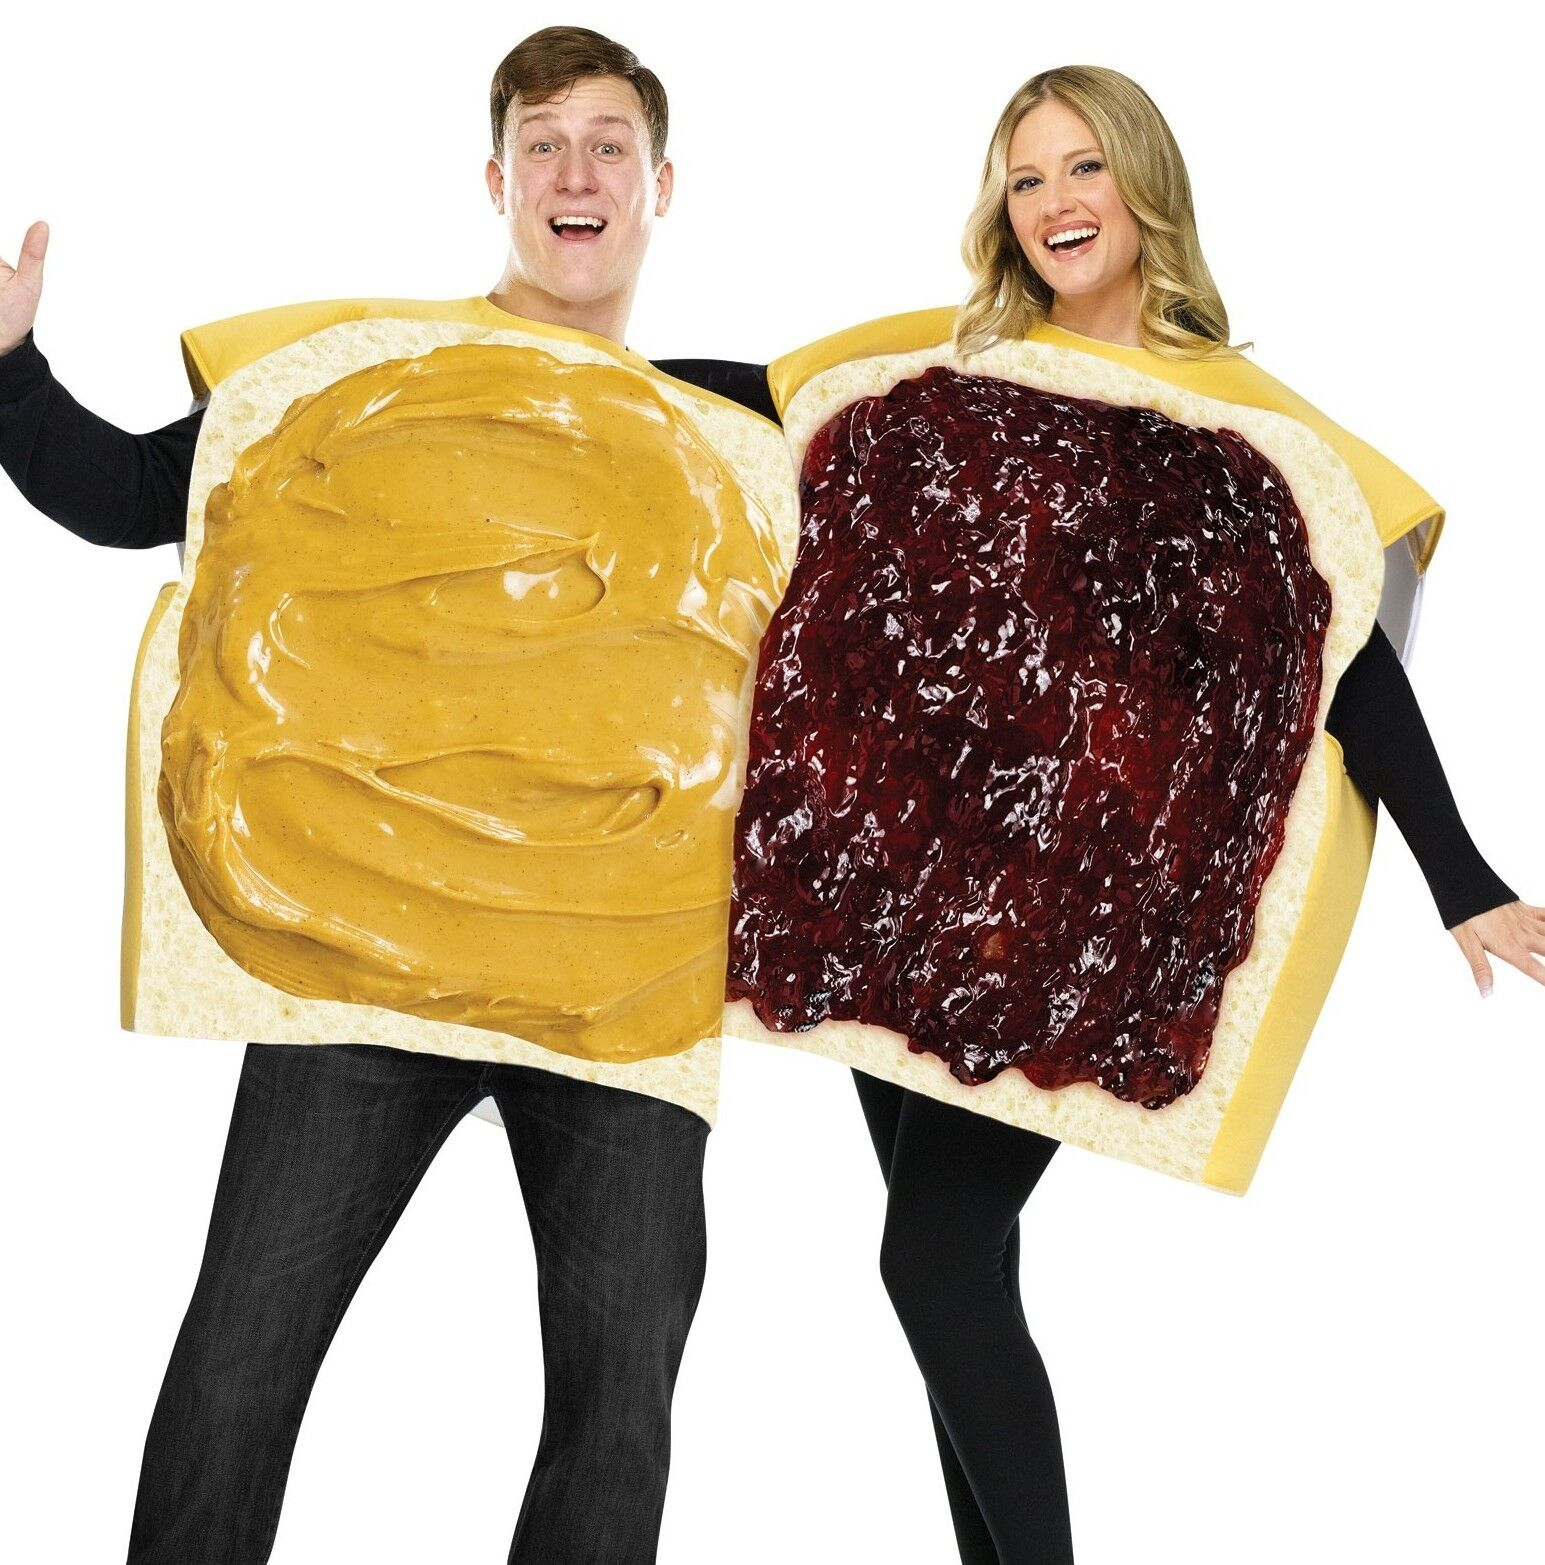 Peanut Butter & Jelly Sandwich Couples Costume Adult Funny Humorous Food – Fast